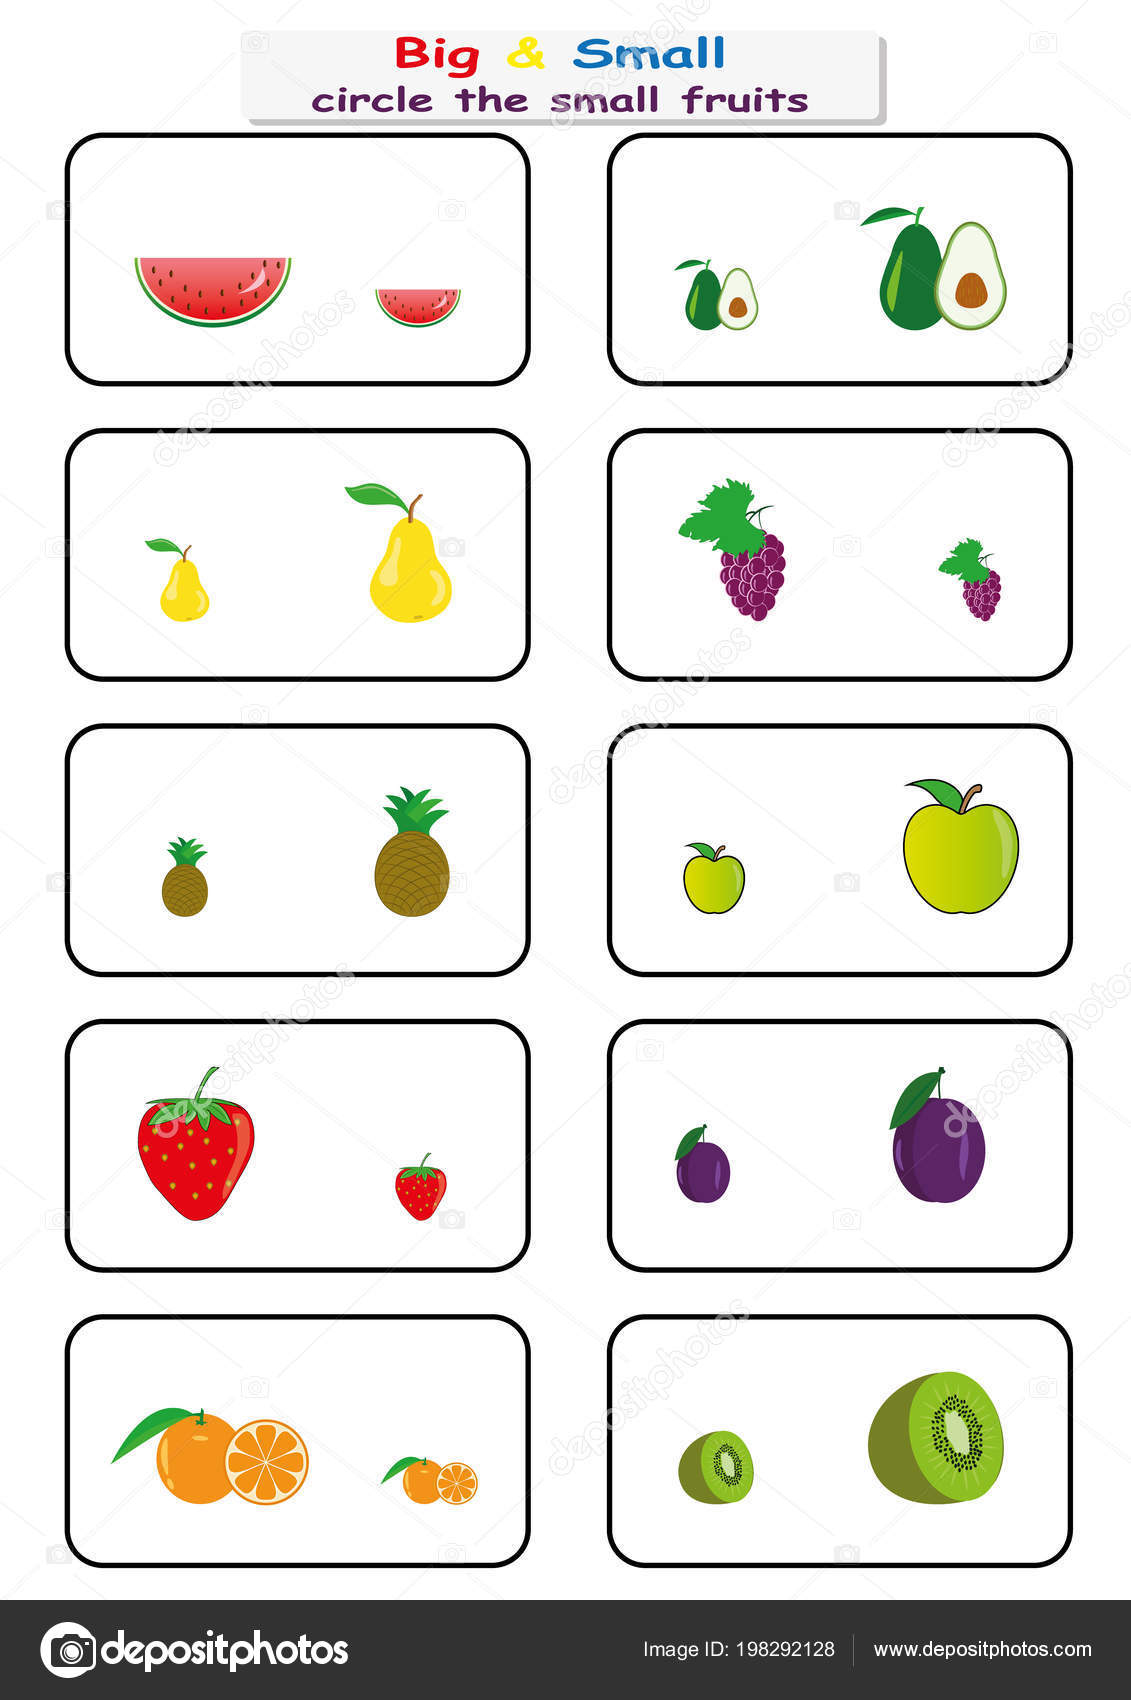 Worksheets For Kindergarten Big And Small